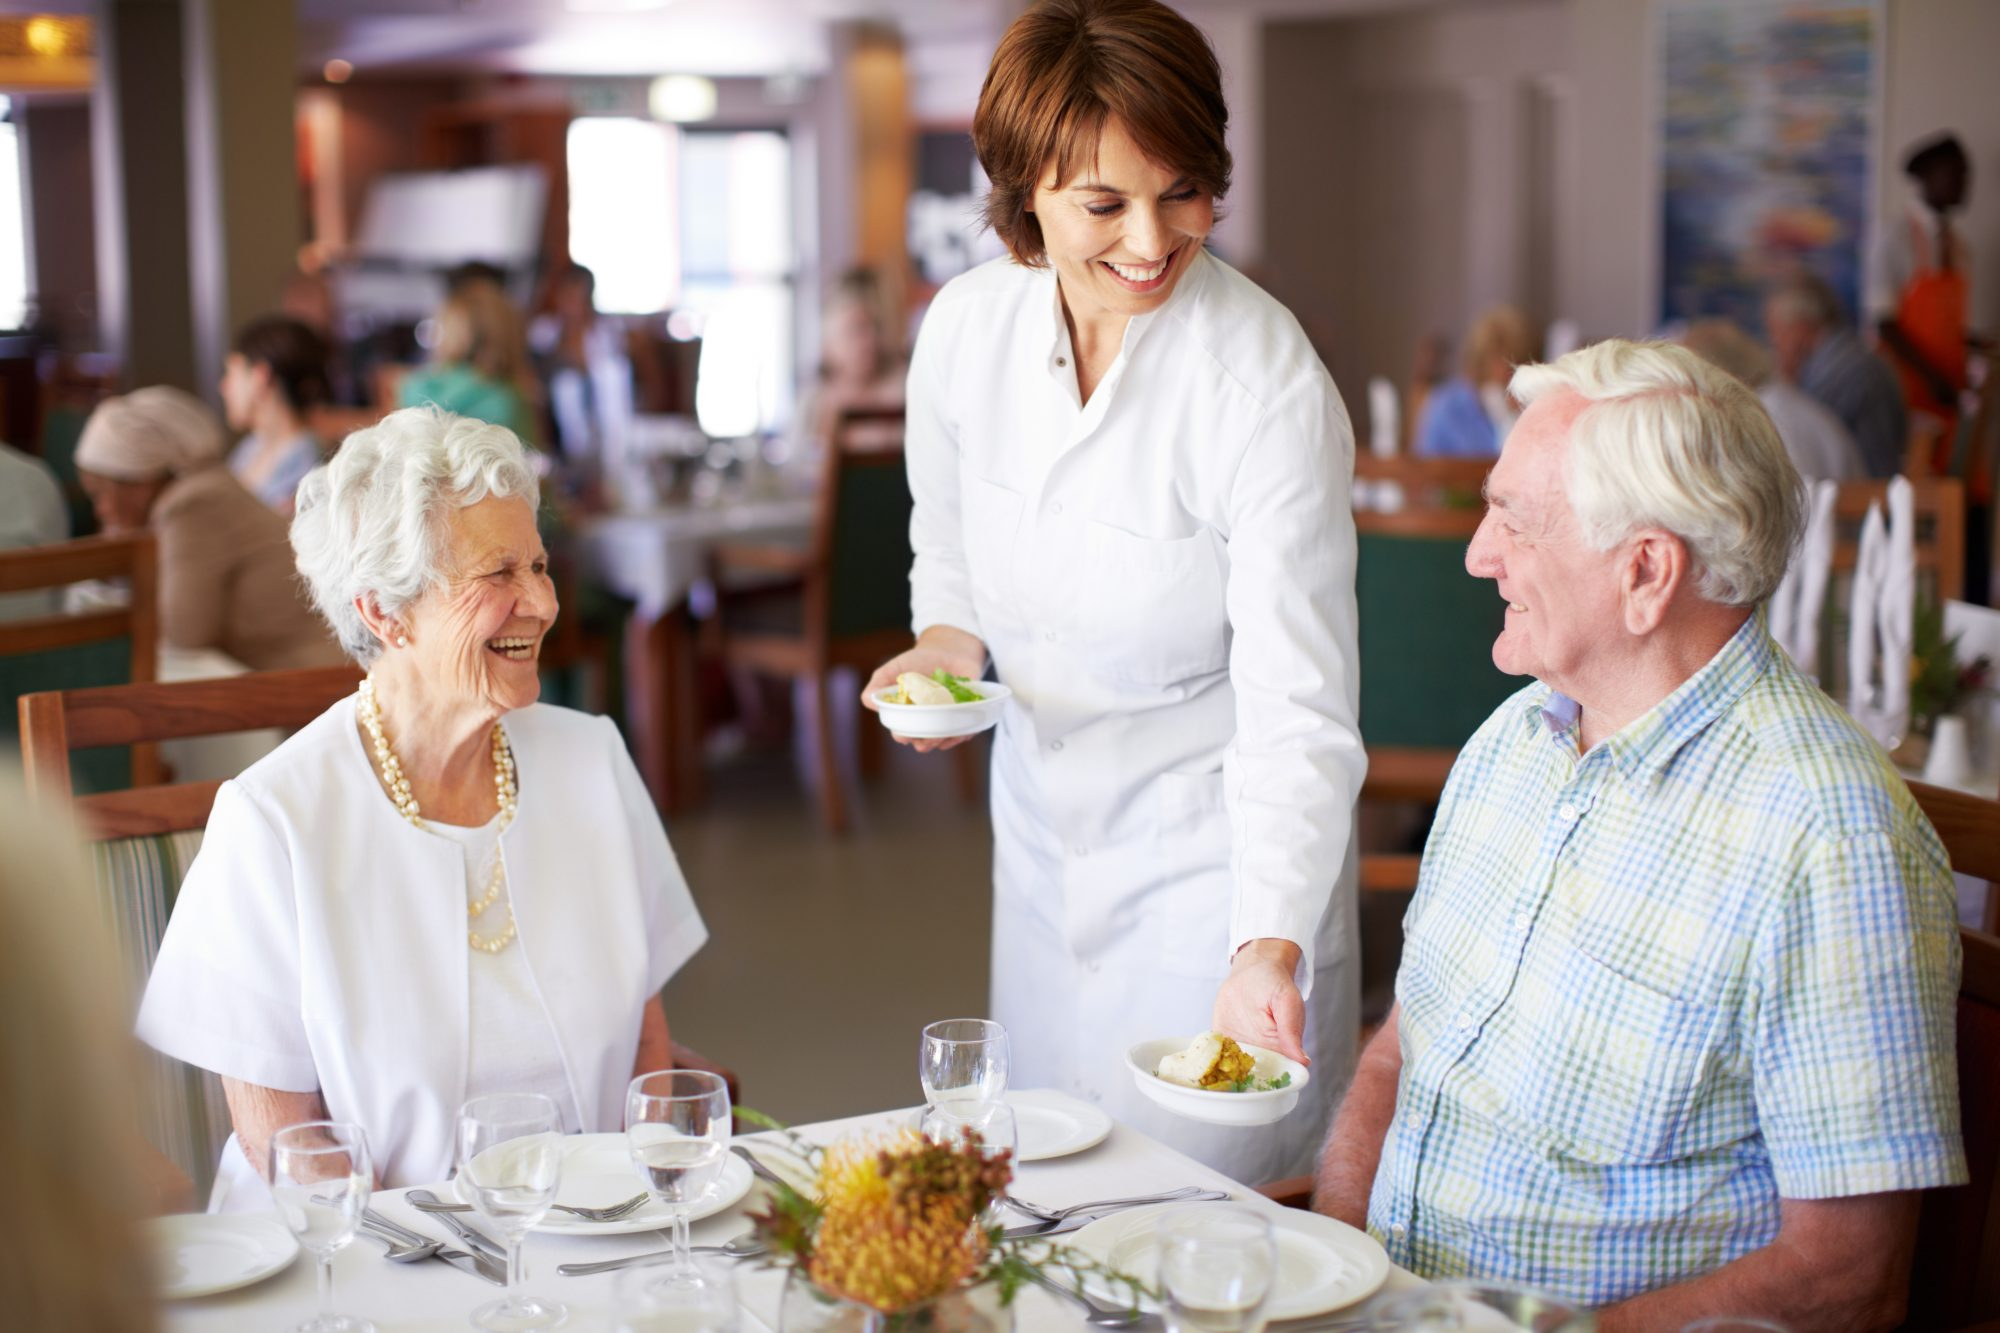 Aged care dining and hospitality services